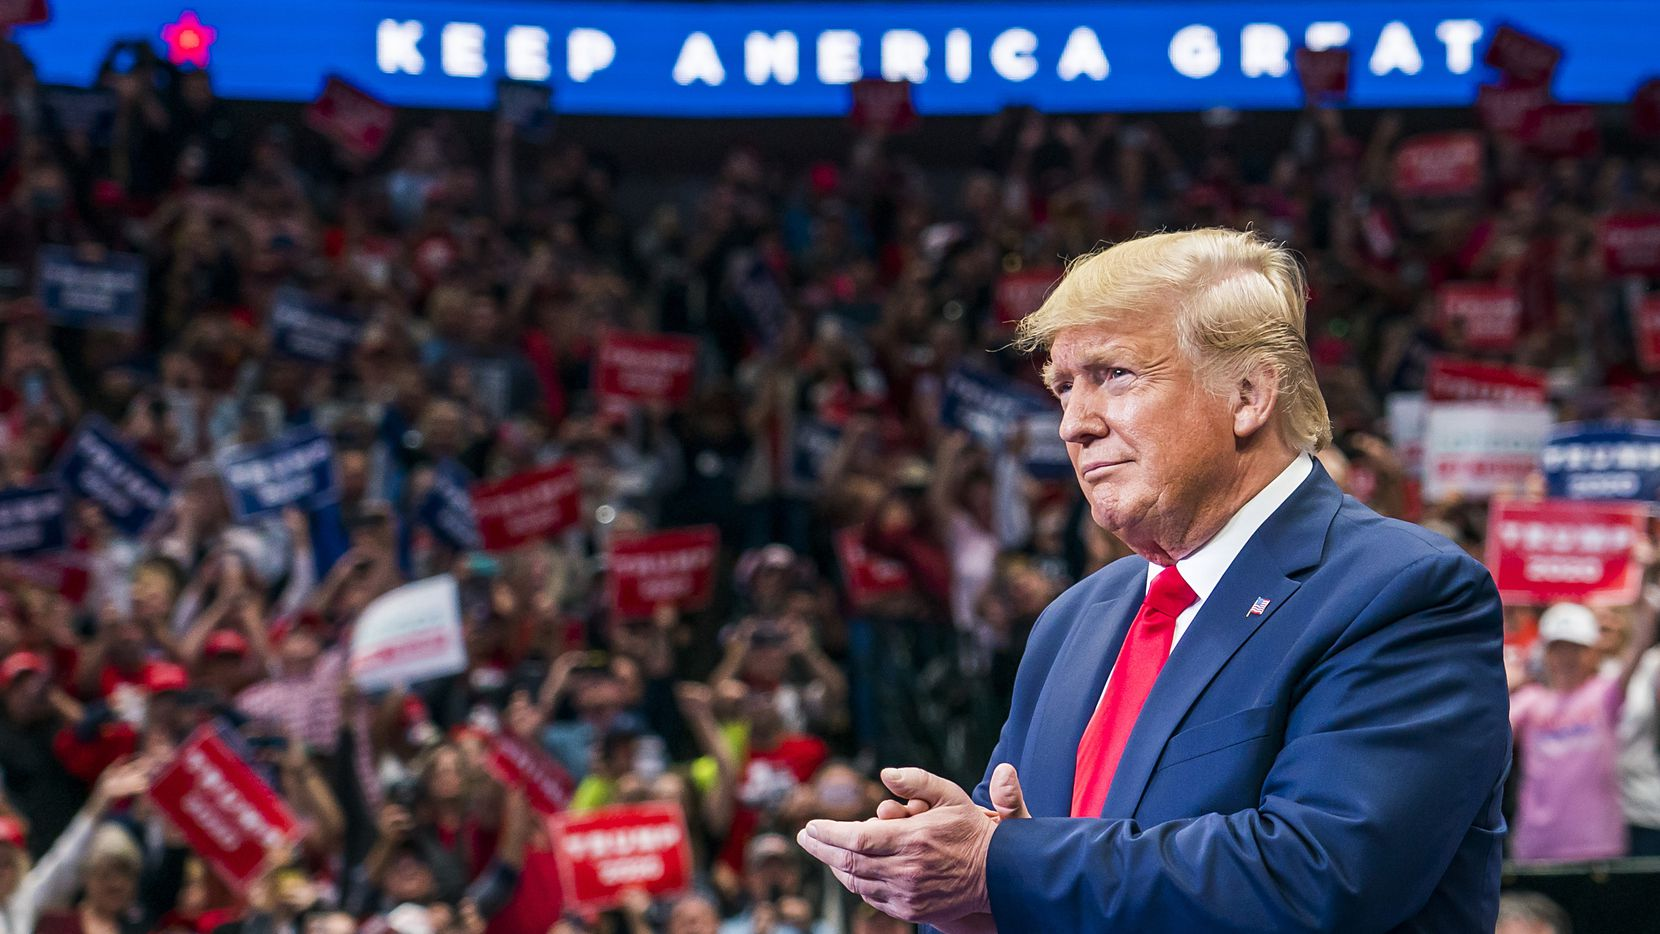 President Donald Trump will return to Texas a month after his campaign rally at American Airlines Center in Dallas on Oct. 17.